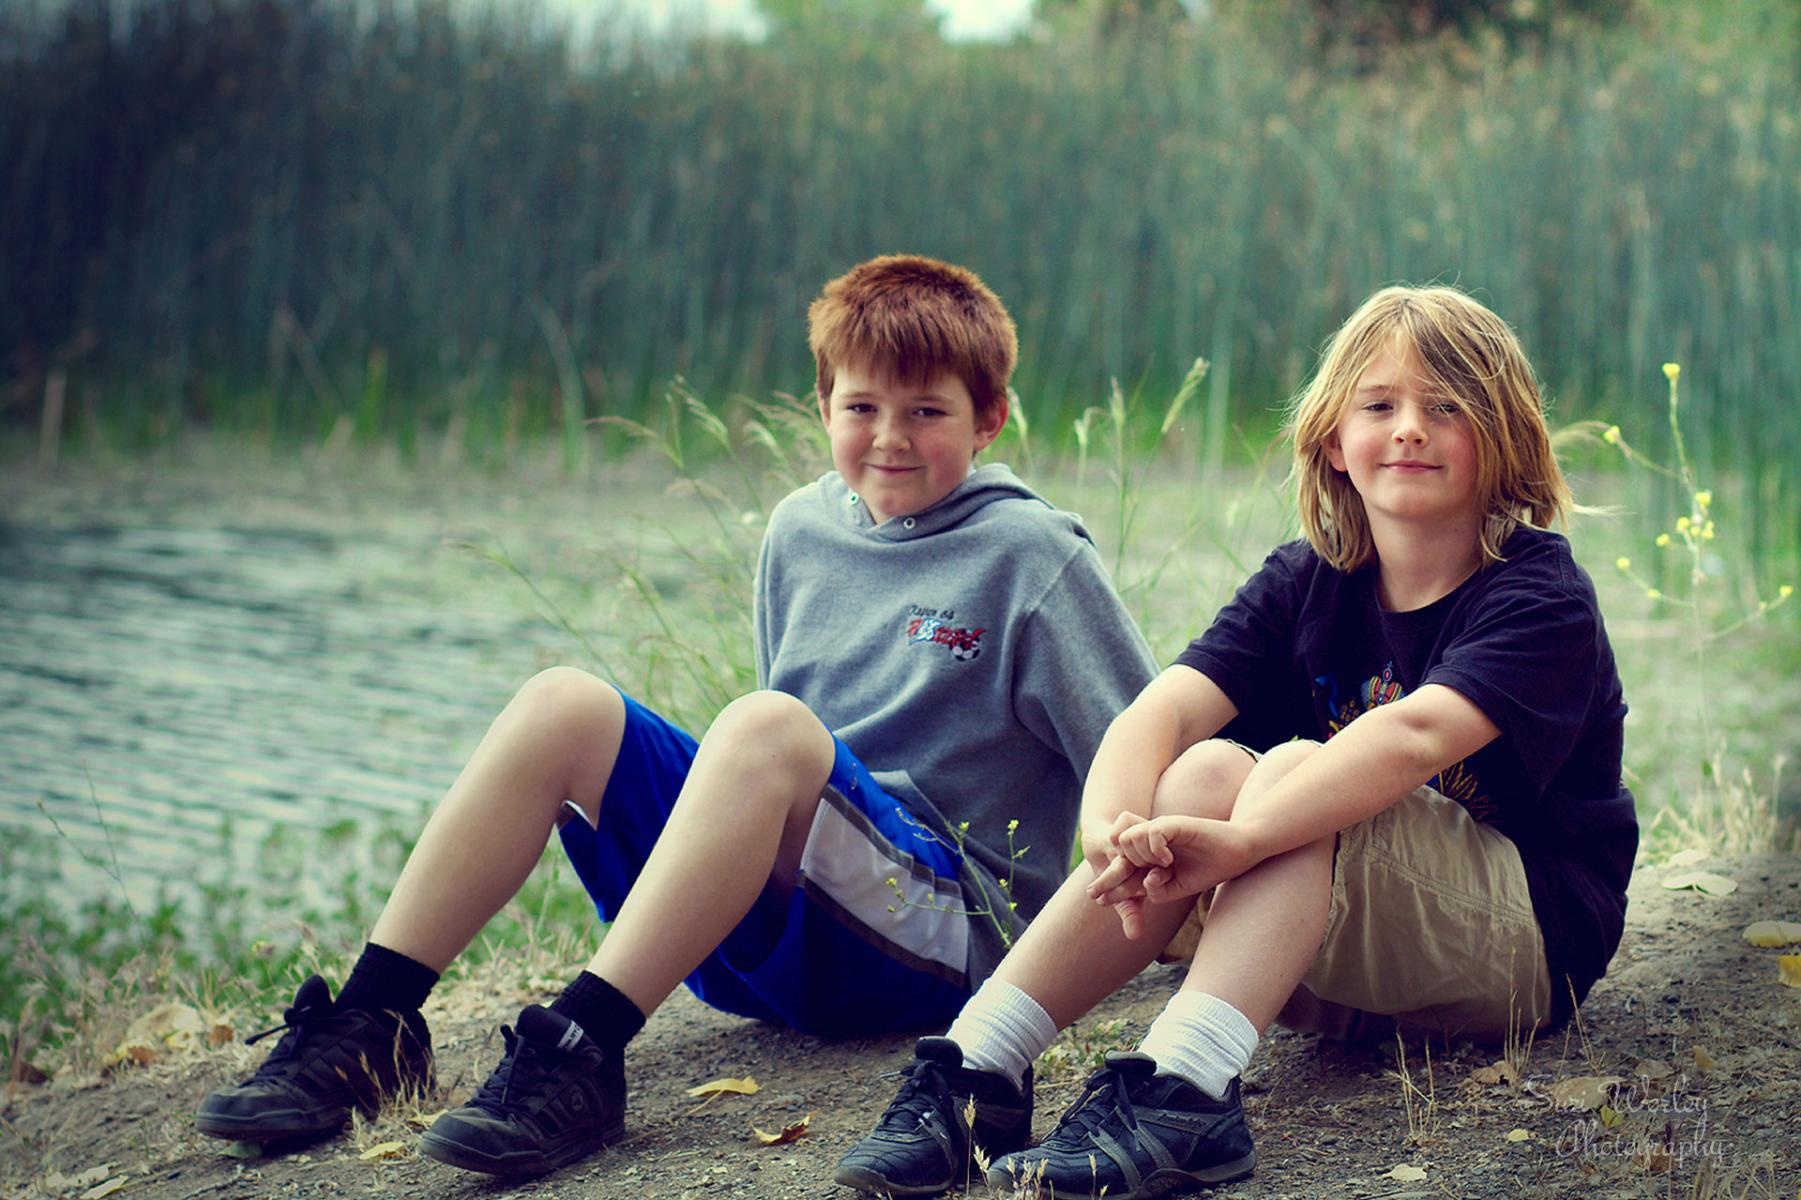 A day at the pond.  #SuziWorleyPhotography #FamilyPictures #Boys